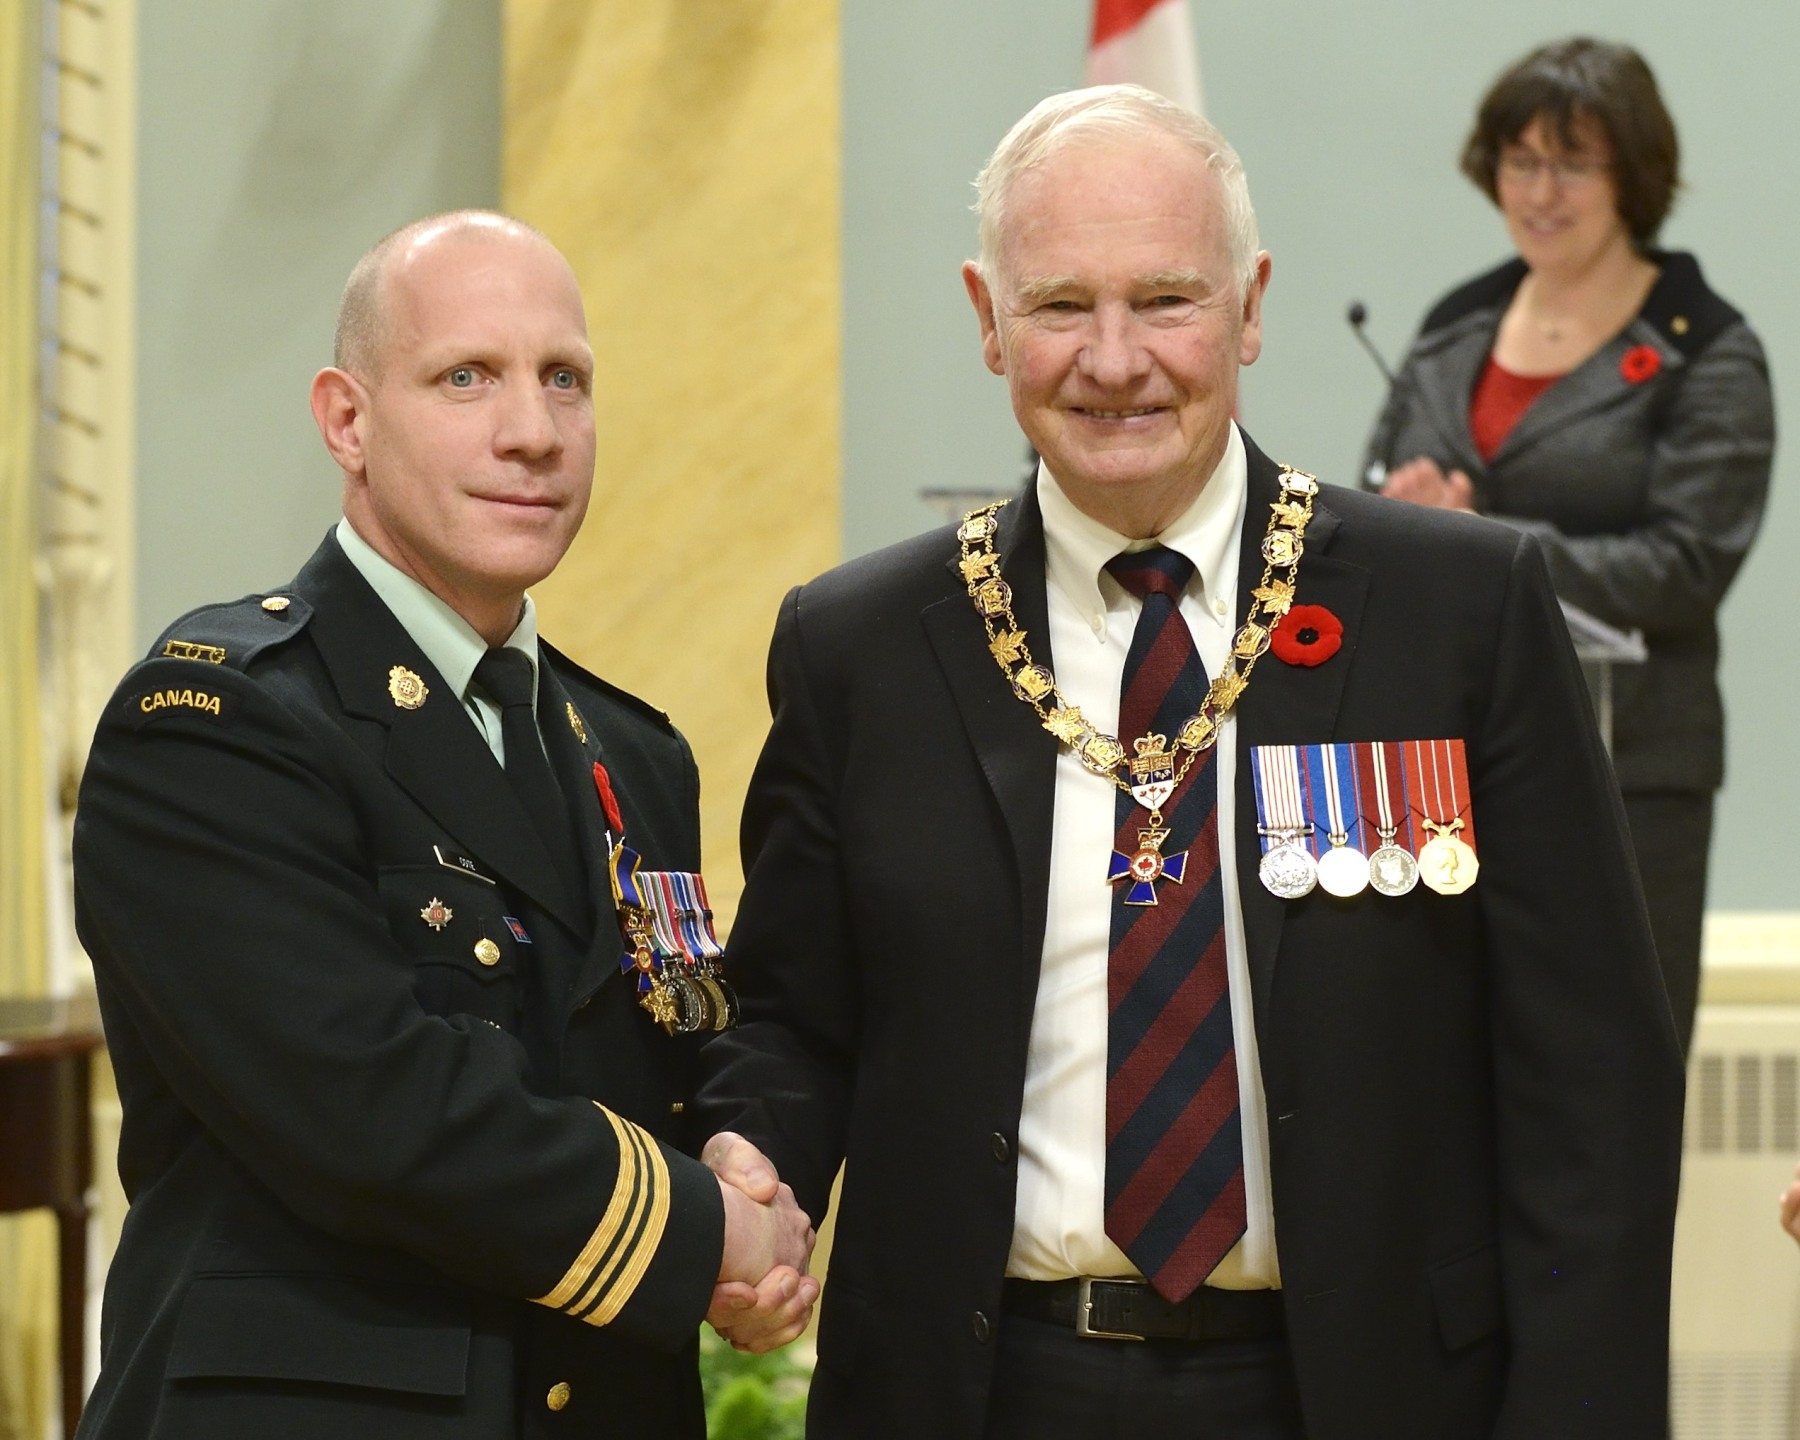 His Excellency presented the Order of Military Merit at the Officer level (O.M.M.) to Major Charles Côté, O.M.M., C.D., North American Aerospace Defence Command Outside Canada, Colorado Springs, Colorado, United States of America.